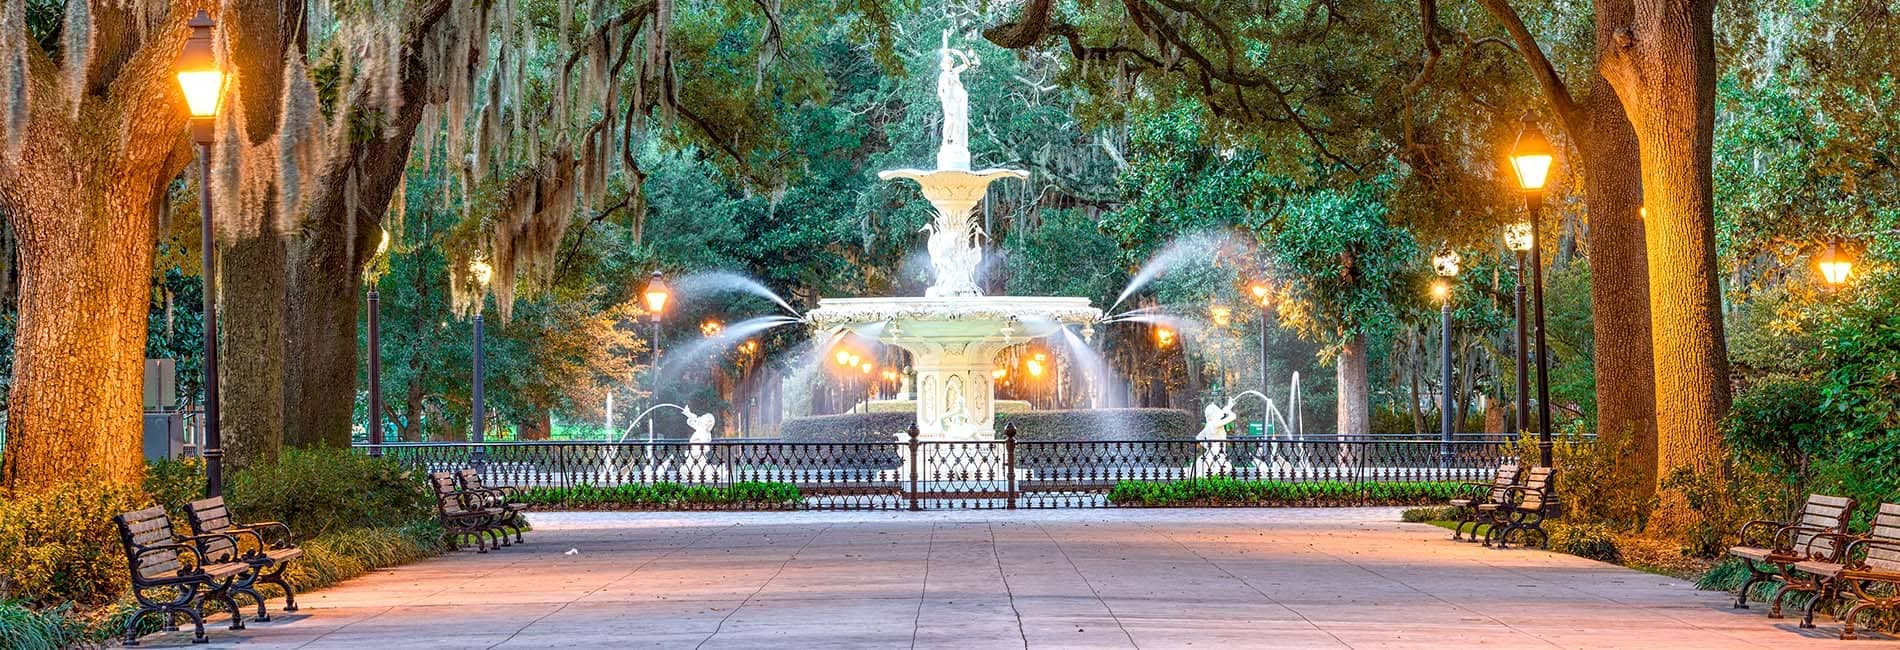 Savannah Georgia Park with Beautiful Statue Water Fountain copy